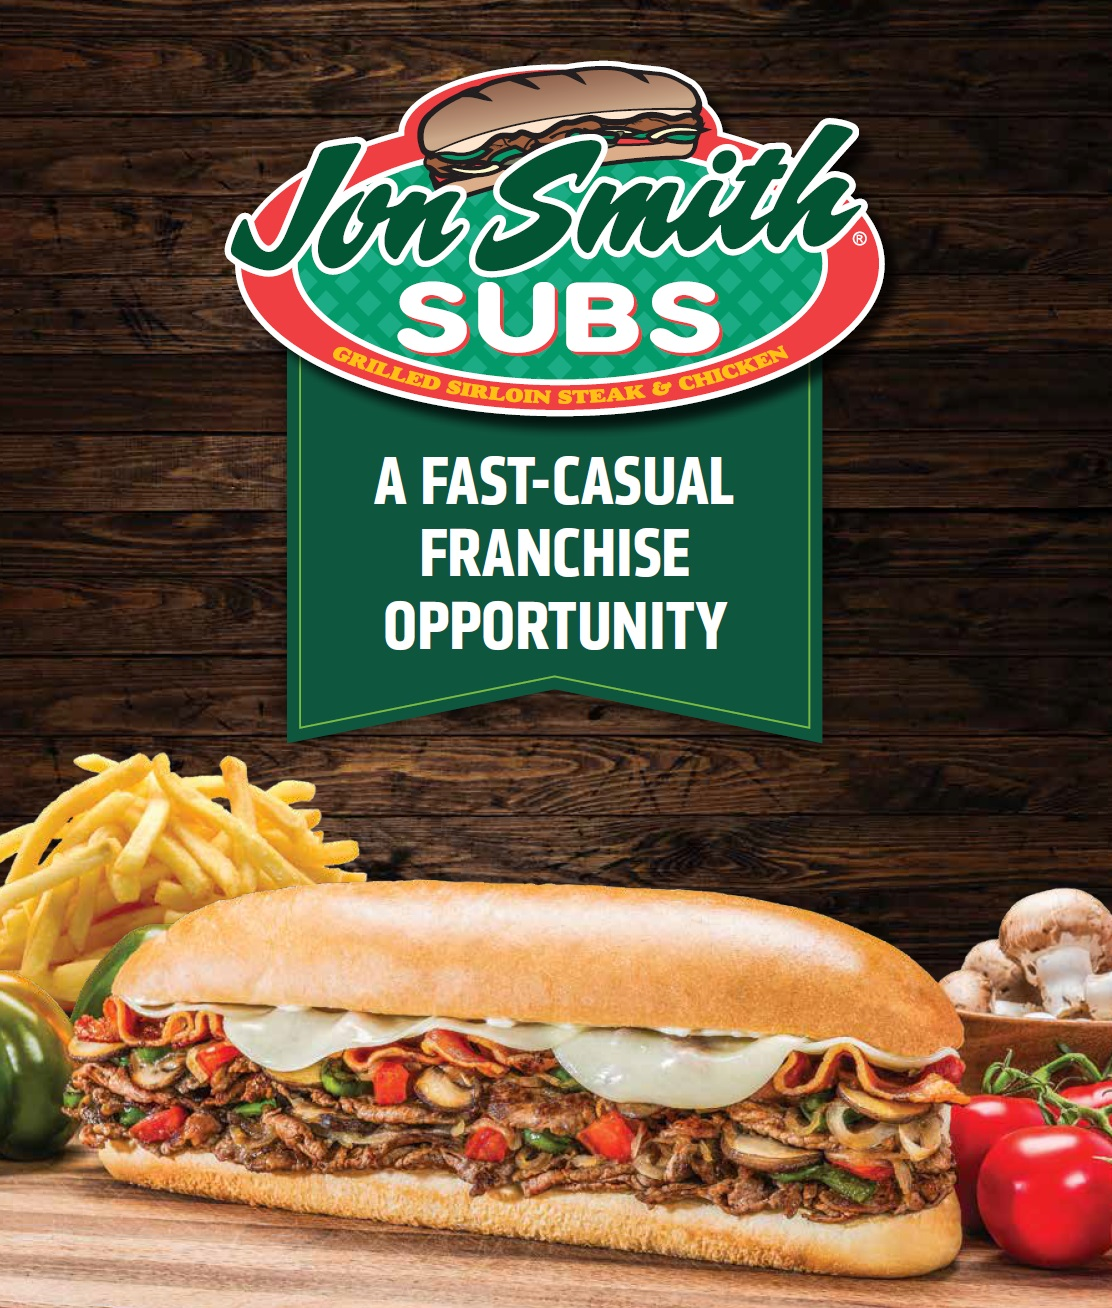 Jon Smith Subs - Start Your Business in the BEST Location